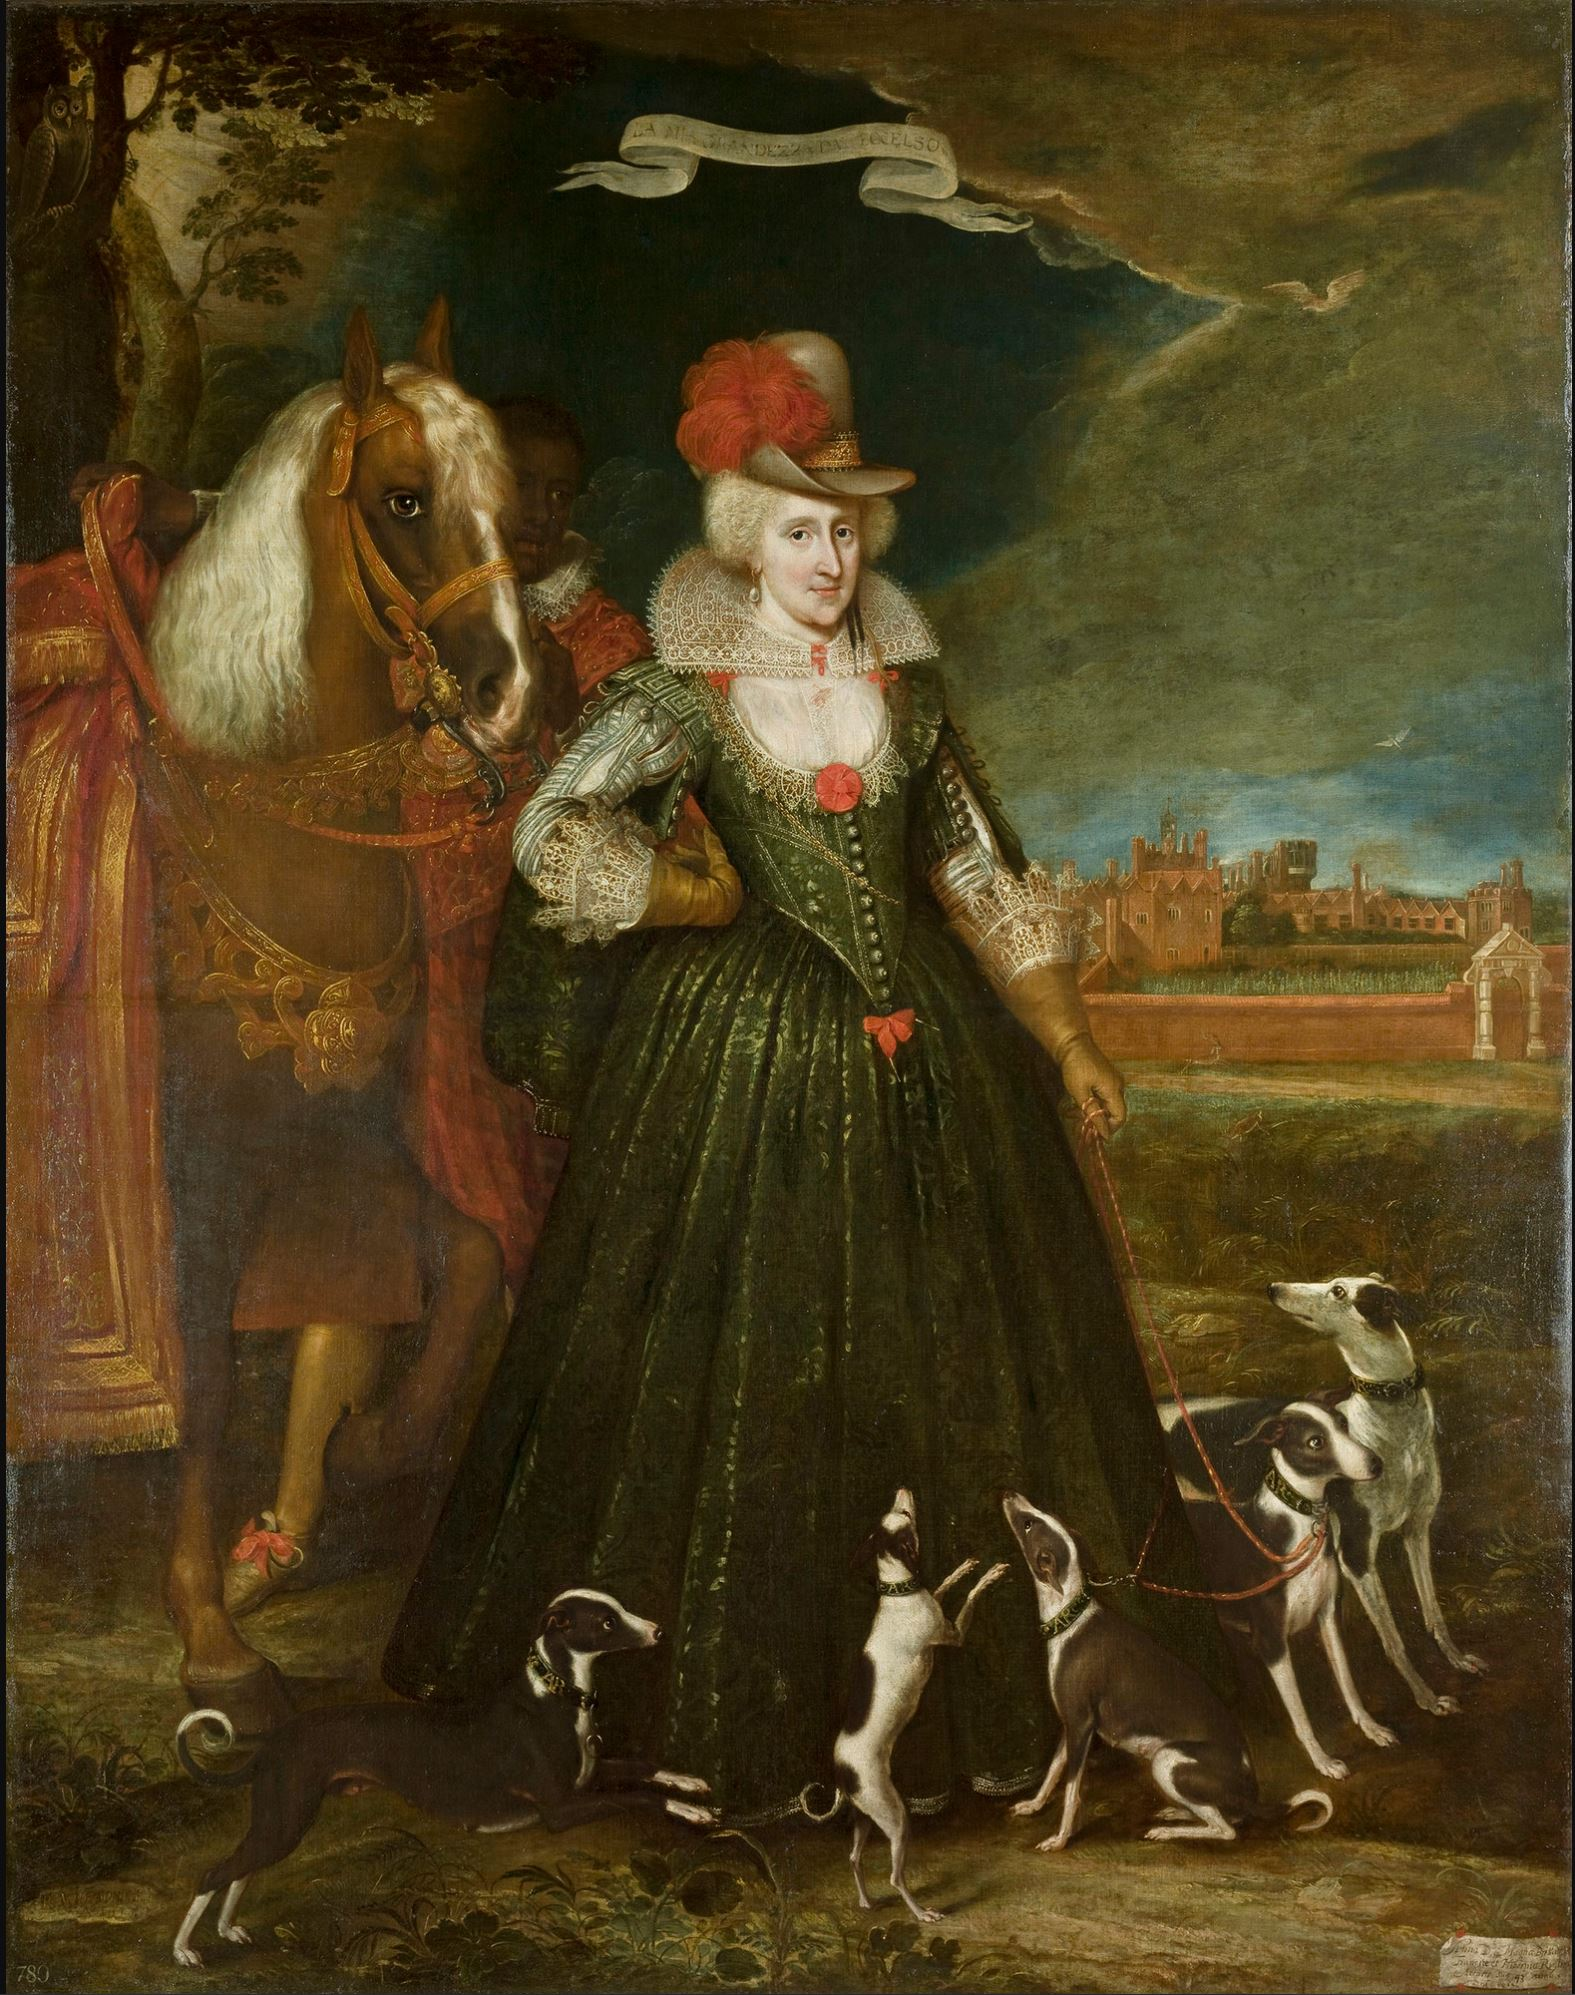 Paul van Somer, Anne of Denmark 1617. o/c 265,5 x 209, Royal Collection Trust.